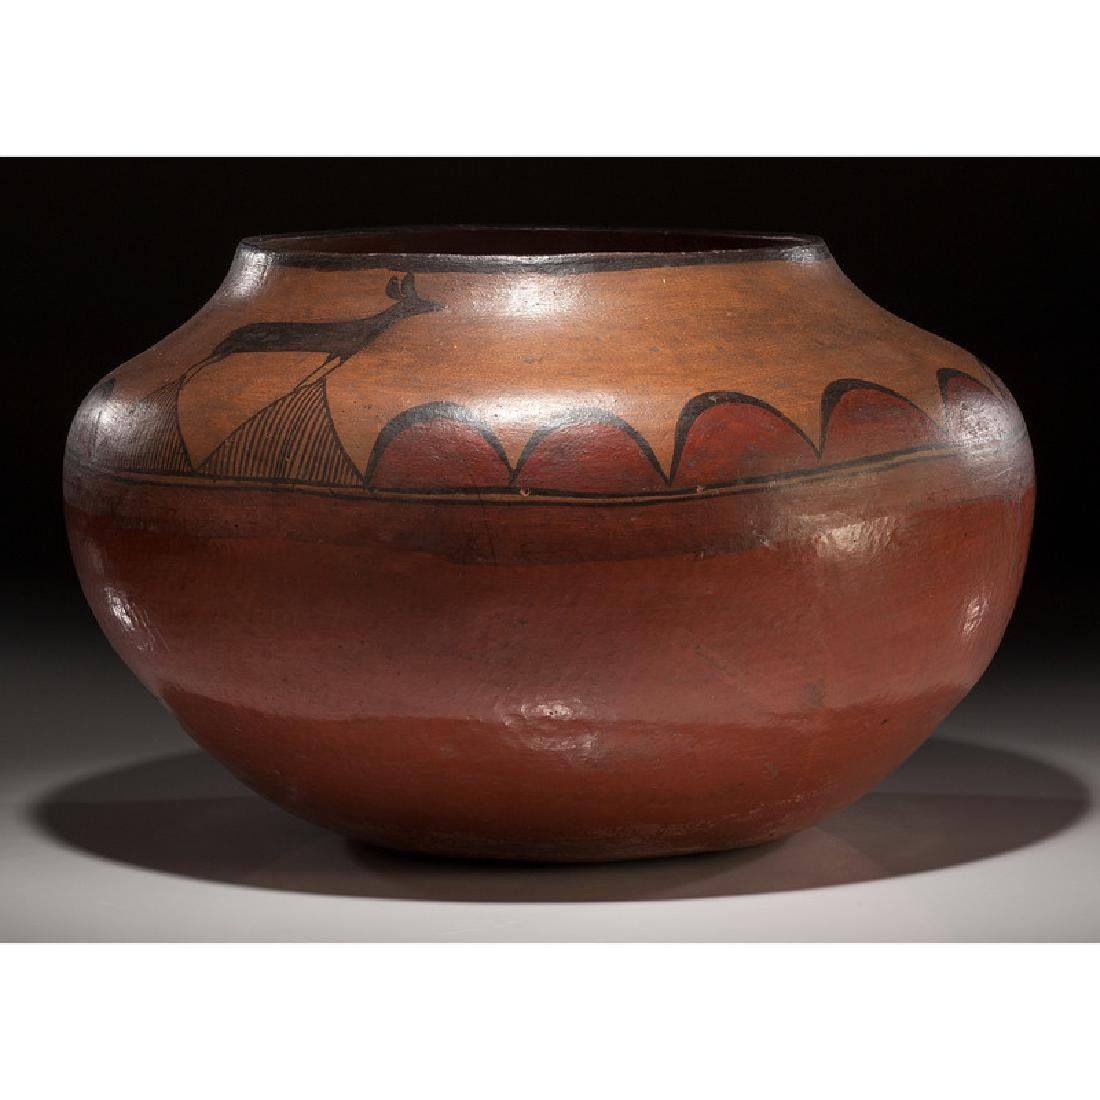 Zia Pictorial Pottery Olla, From the Collection of - 3